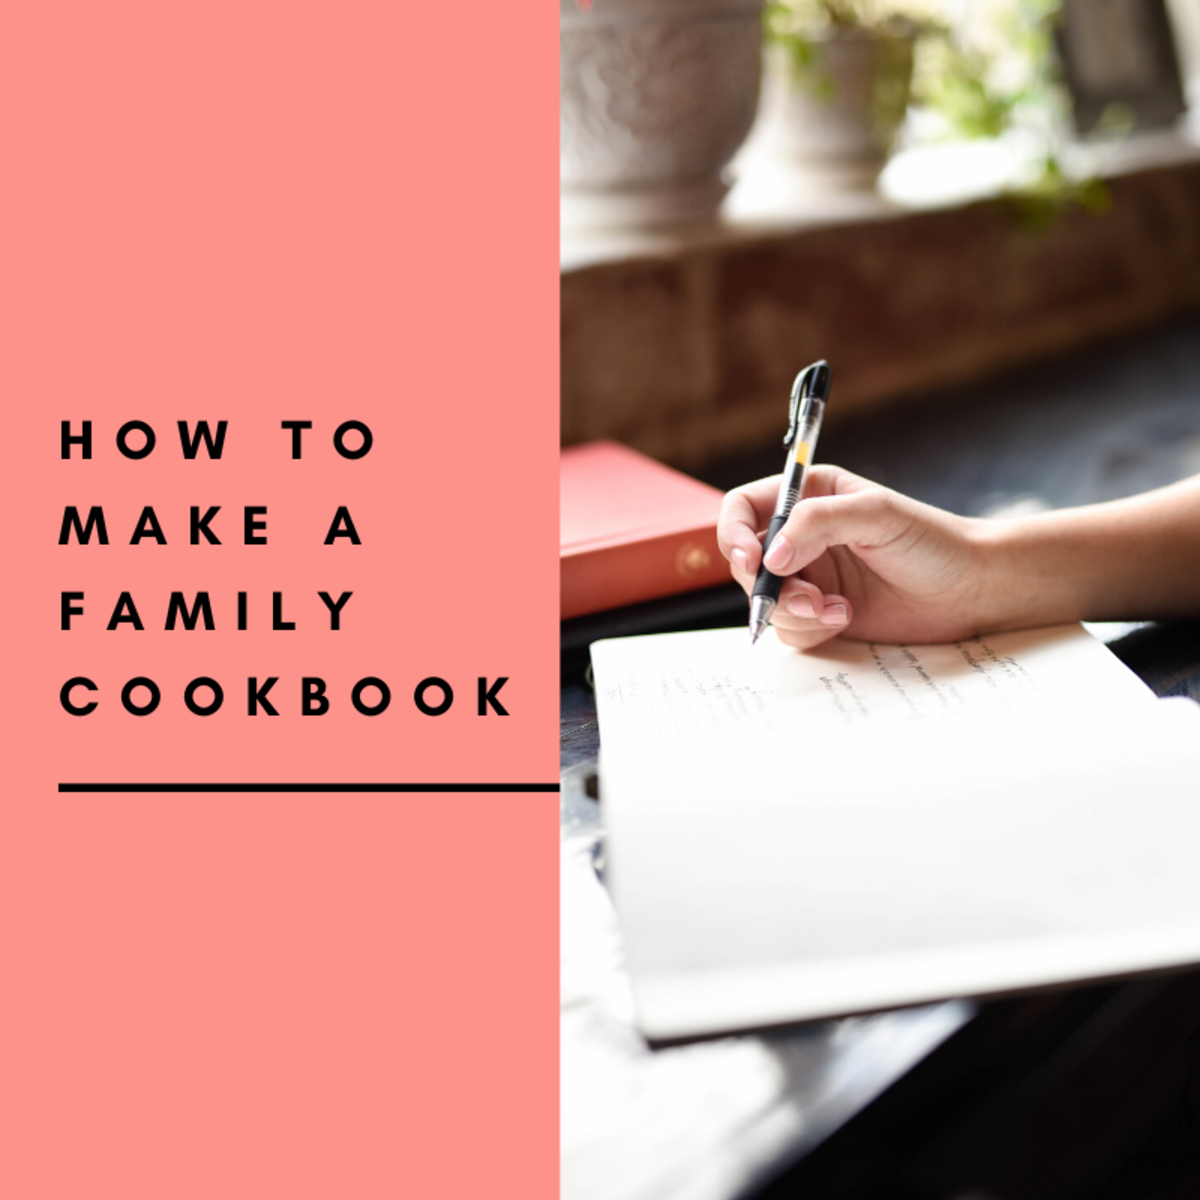 How to Easily Make a Family Cookbook From Scratch